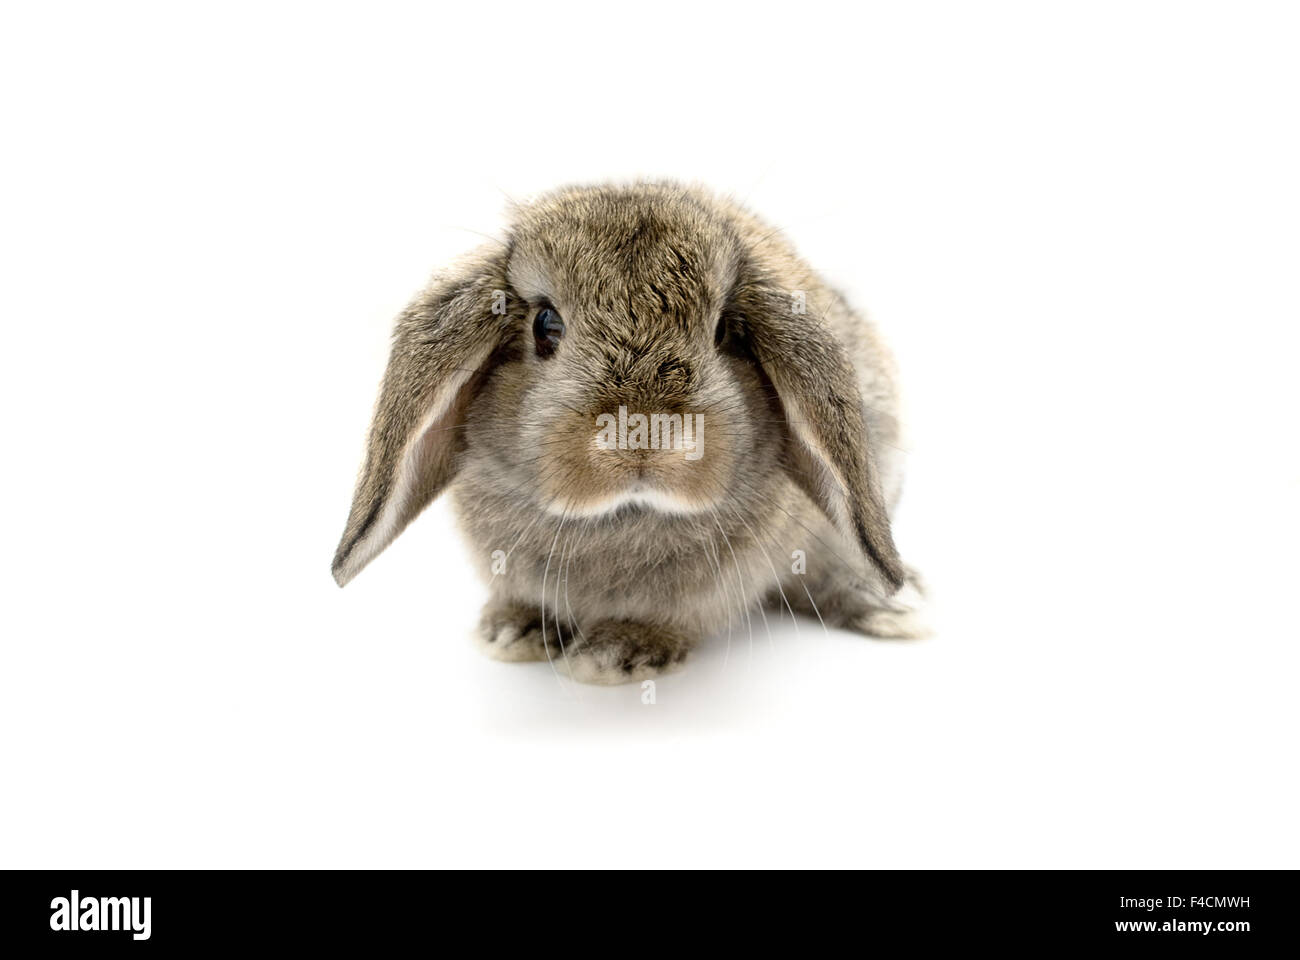 Adorable five week old baby lop eared rabbit. - Stock Image